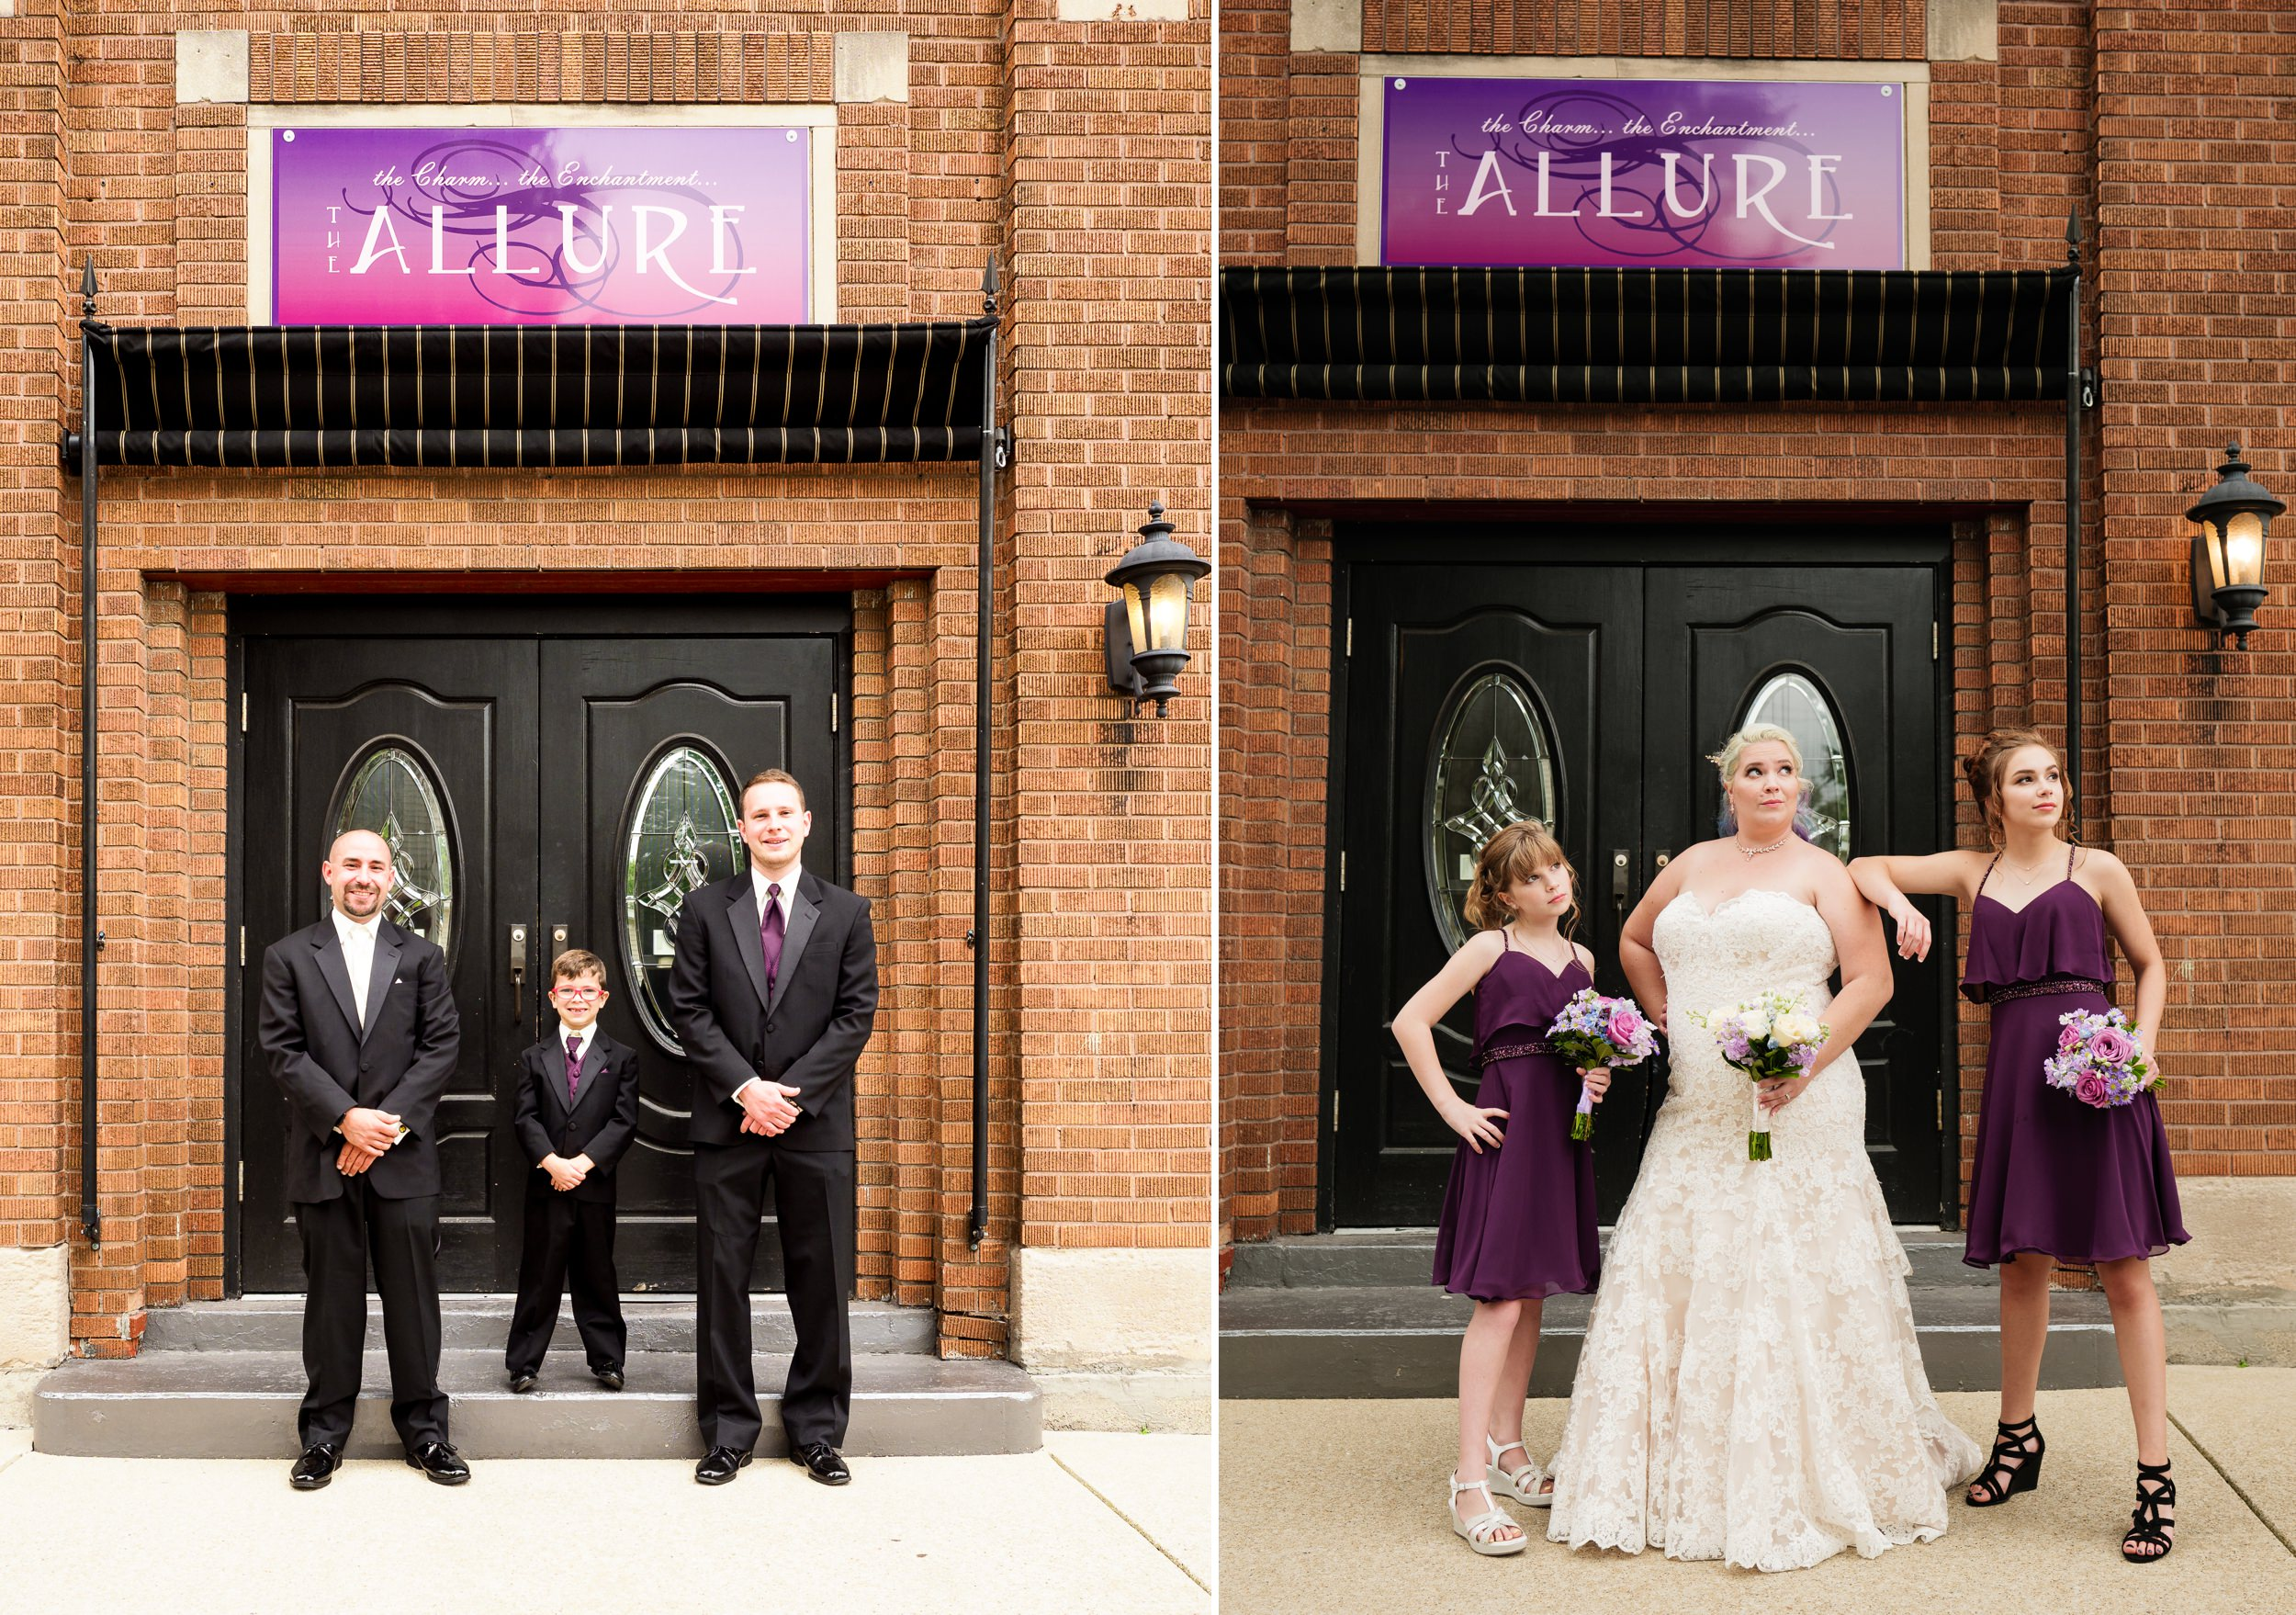 Groomsmen and bridesmaids outside The Allure in Laporte.